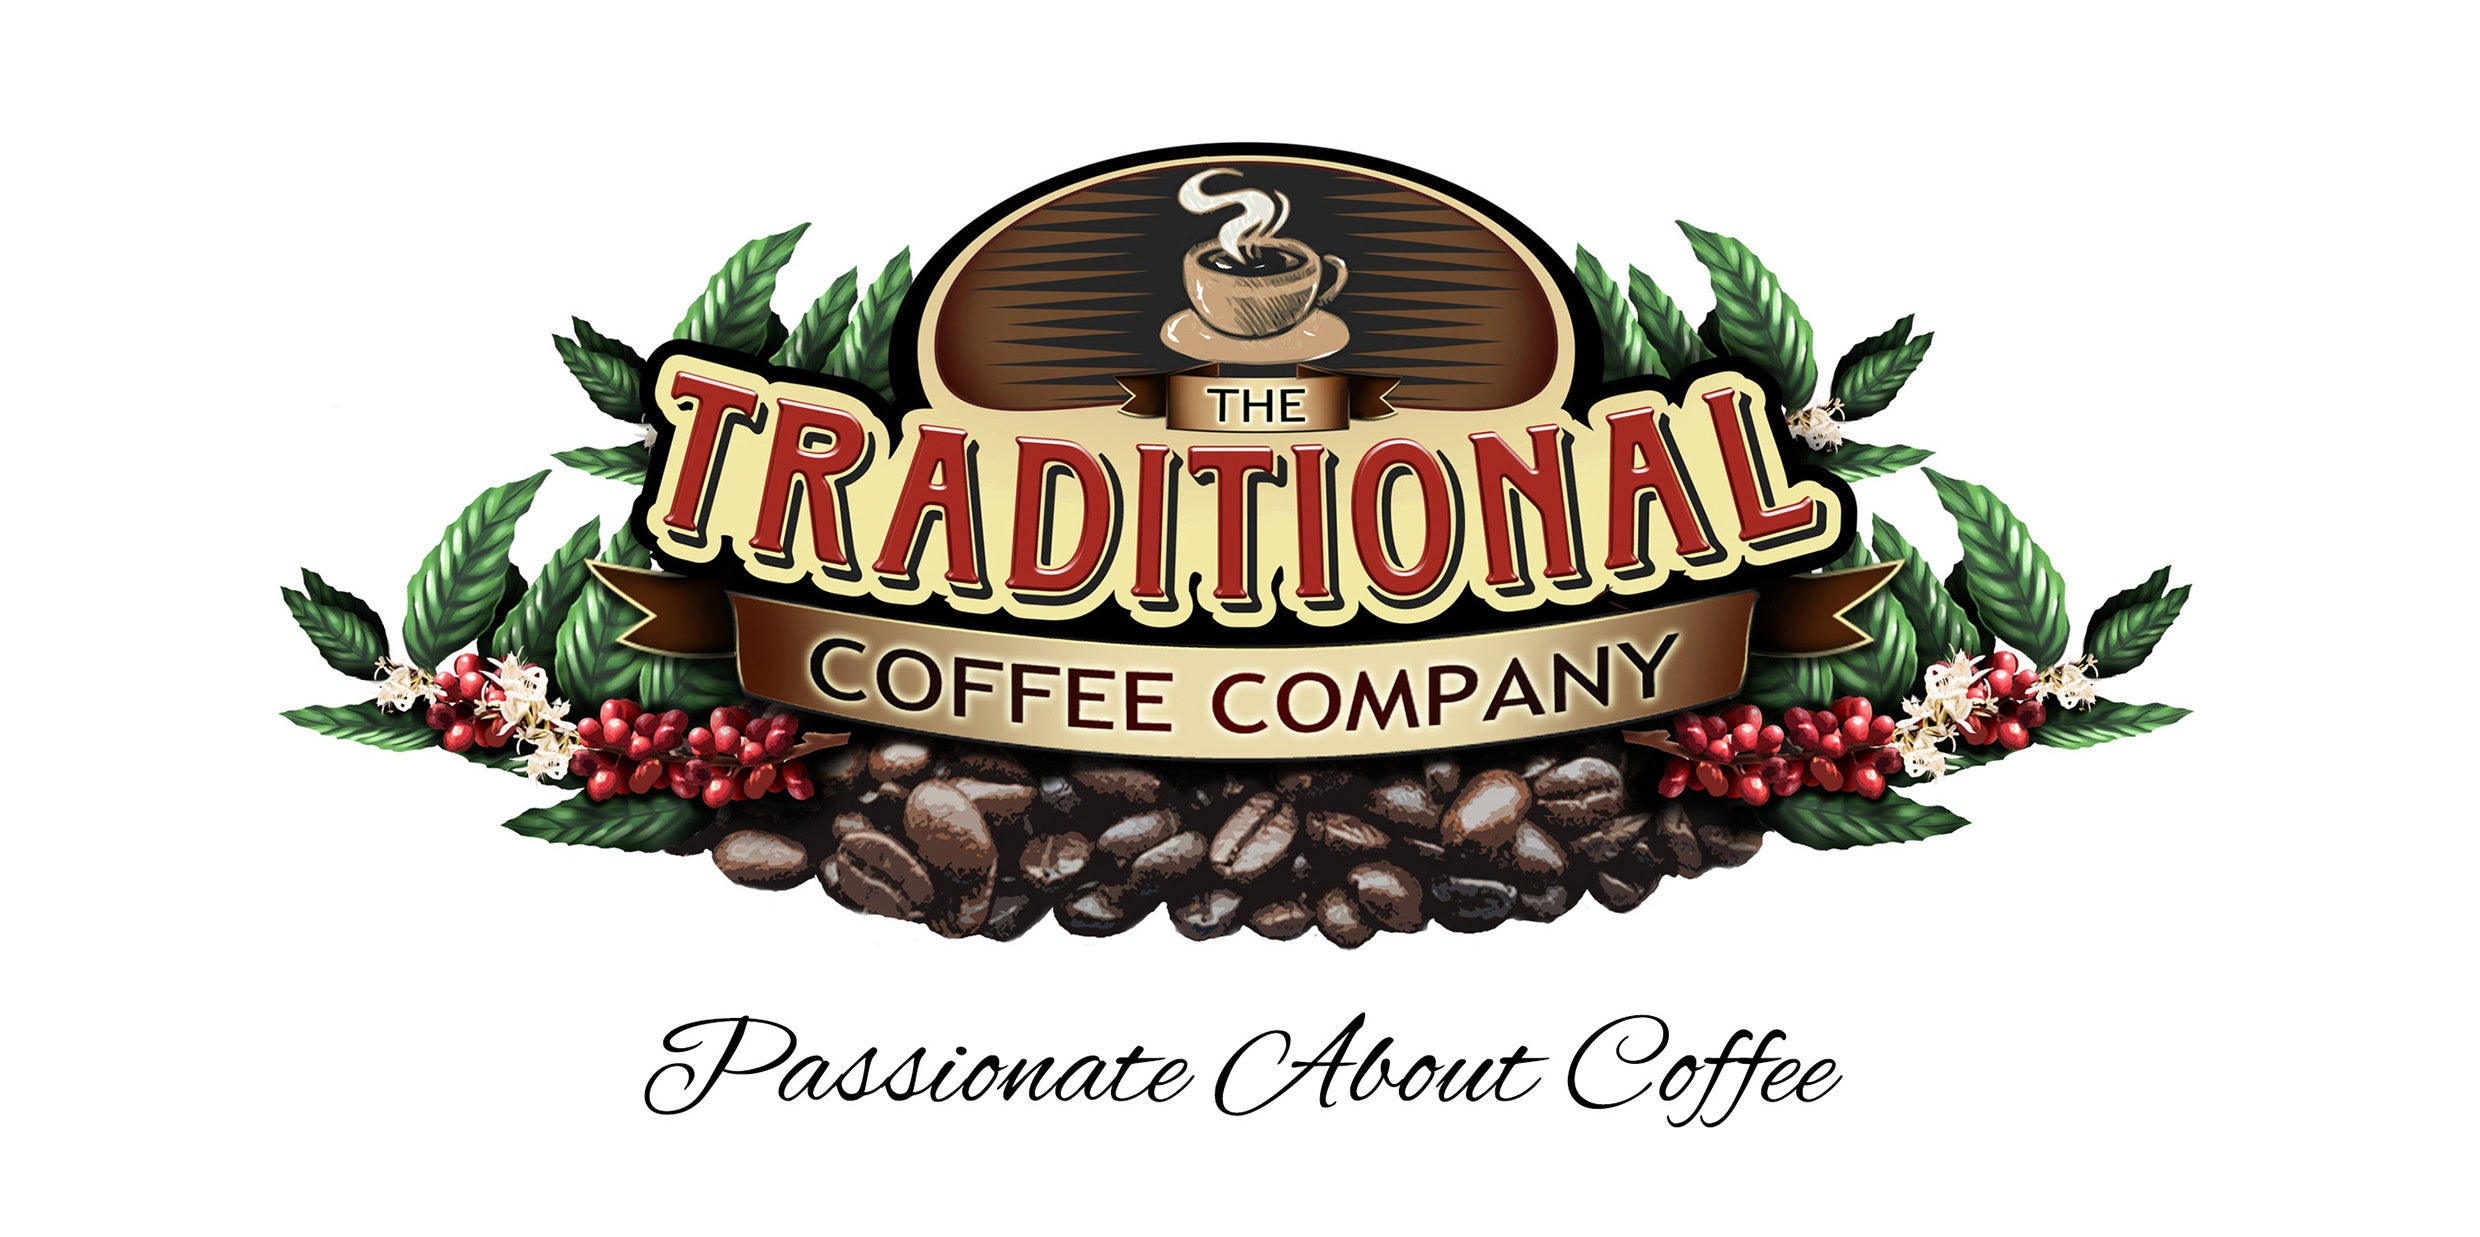 The Traditional Coffee Company